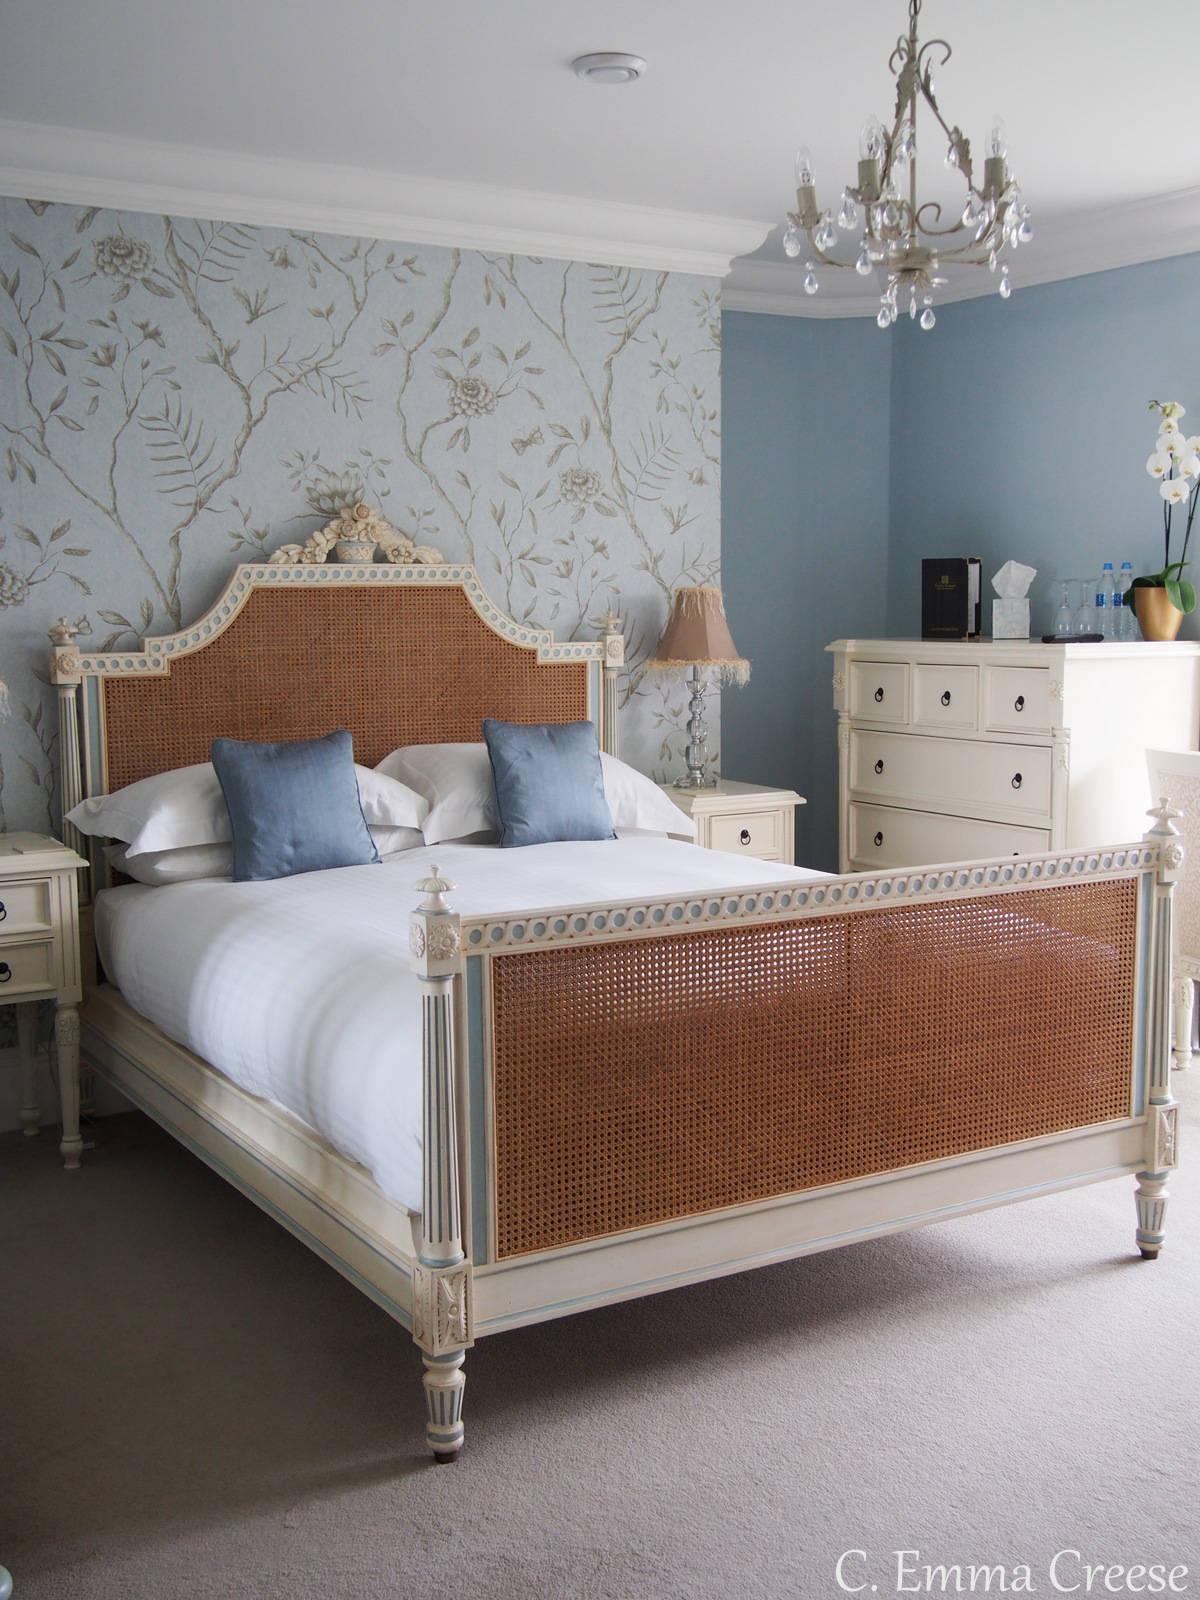 Staying at the Old Vicarage, a luxury guesthouse in Cornwall